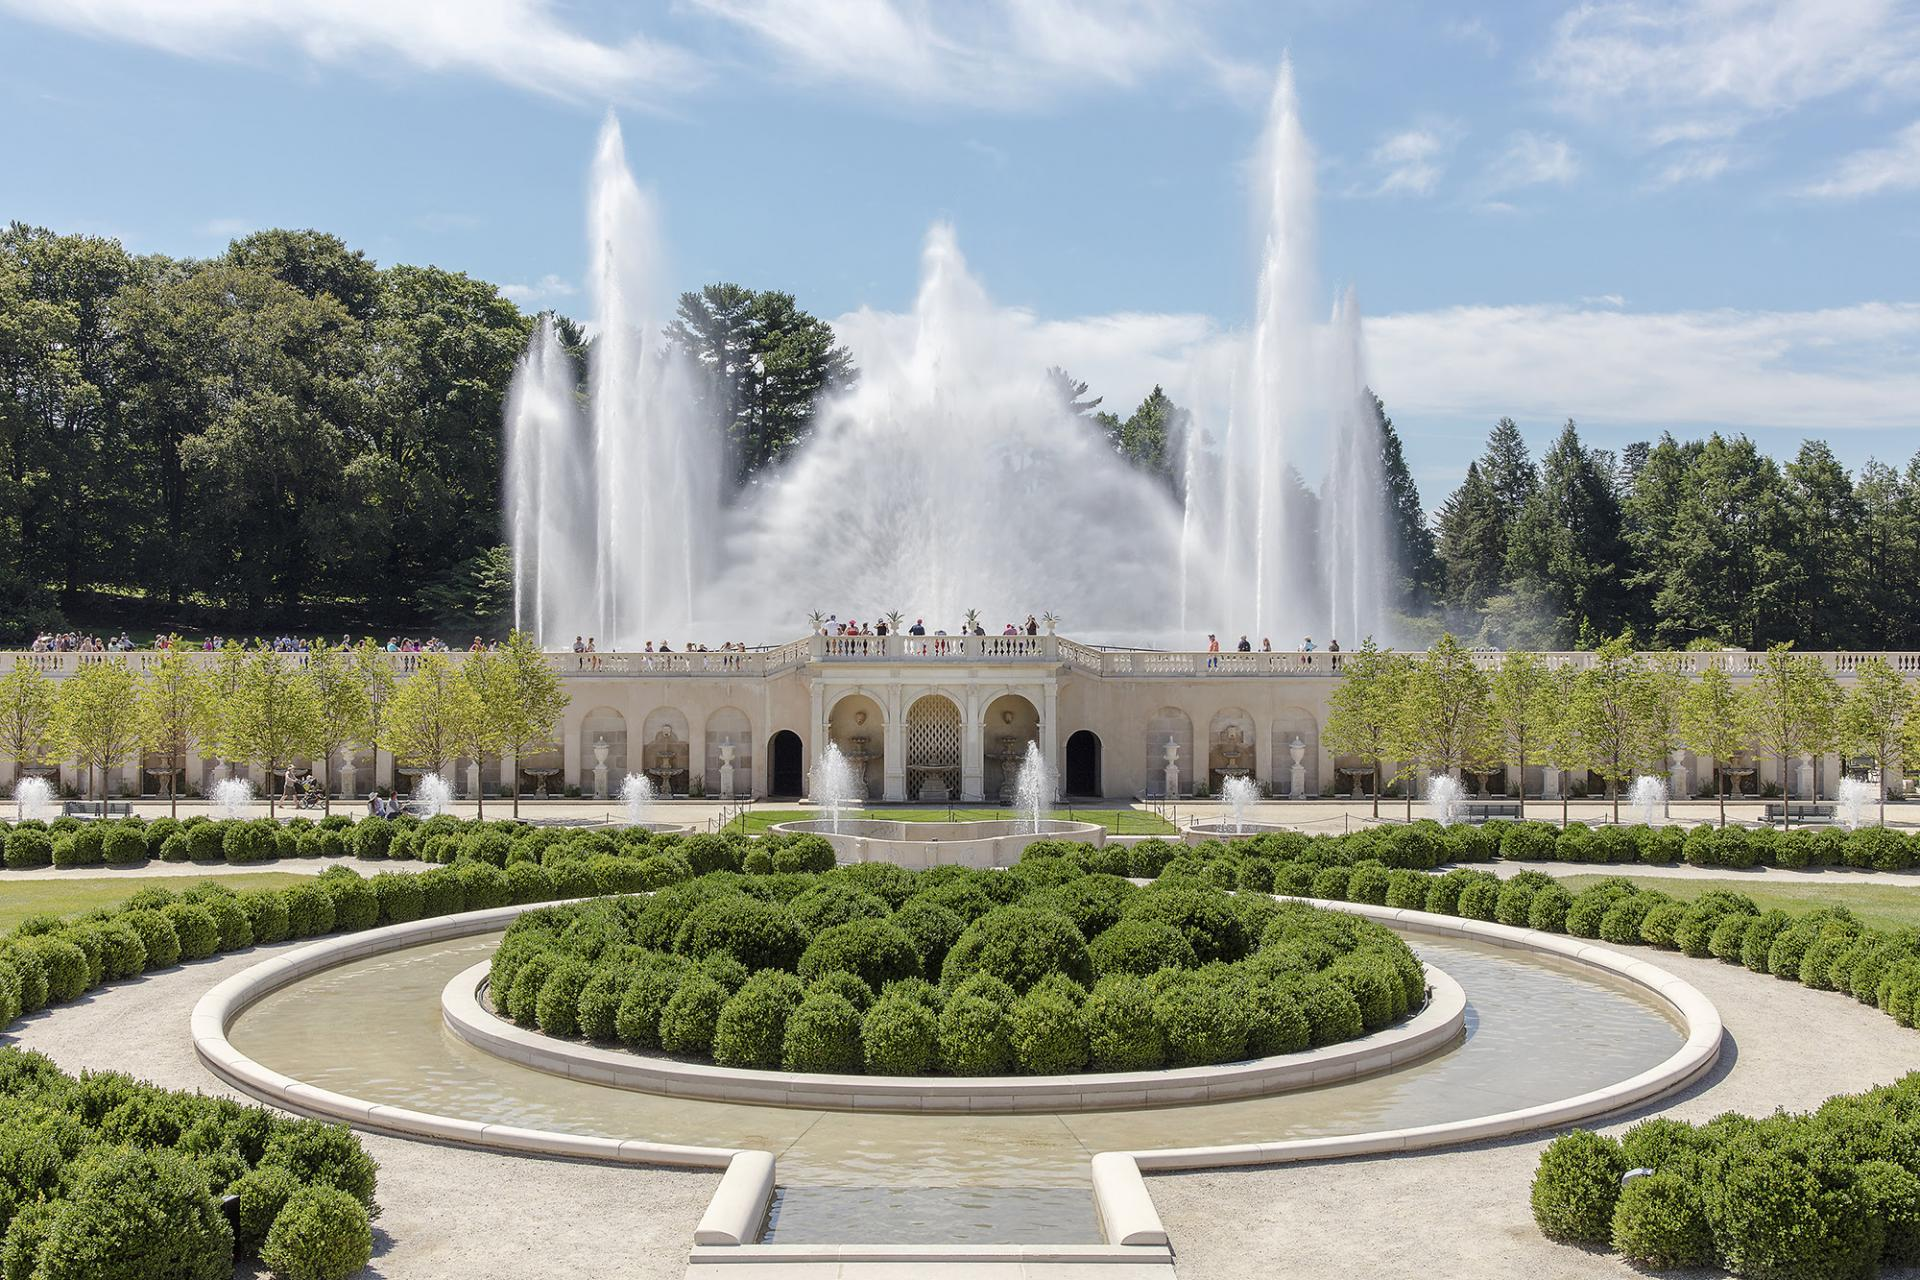 The Revitalized Main Fountain Garden At Longwood Recognized By Preservation Alliance For Greater Philadelphia